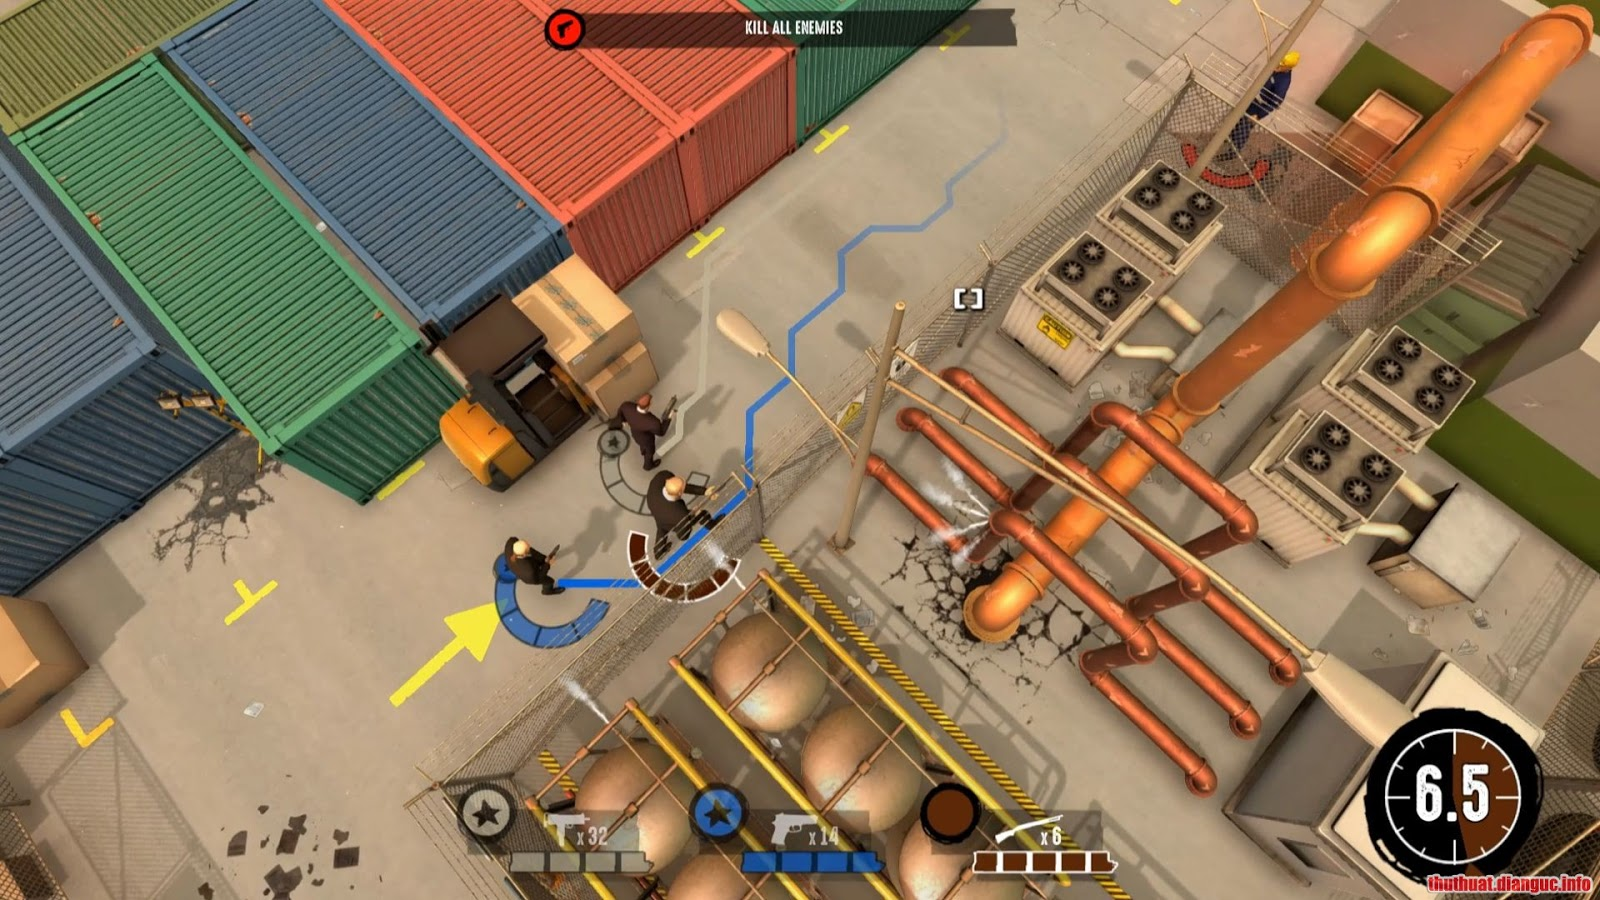 Download Game Reservoir Dogs: Bloody Days Full Crack, Game Reservoir Dogs: Bloody Days, Game Reservoir Dogs: Bloody Days free download, Game Reservoir Dogs: Bloody Days full crack, Tải Game Reservoir Dogs: Bloody Days miễn phí